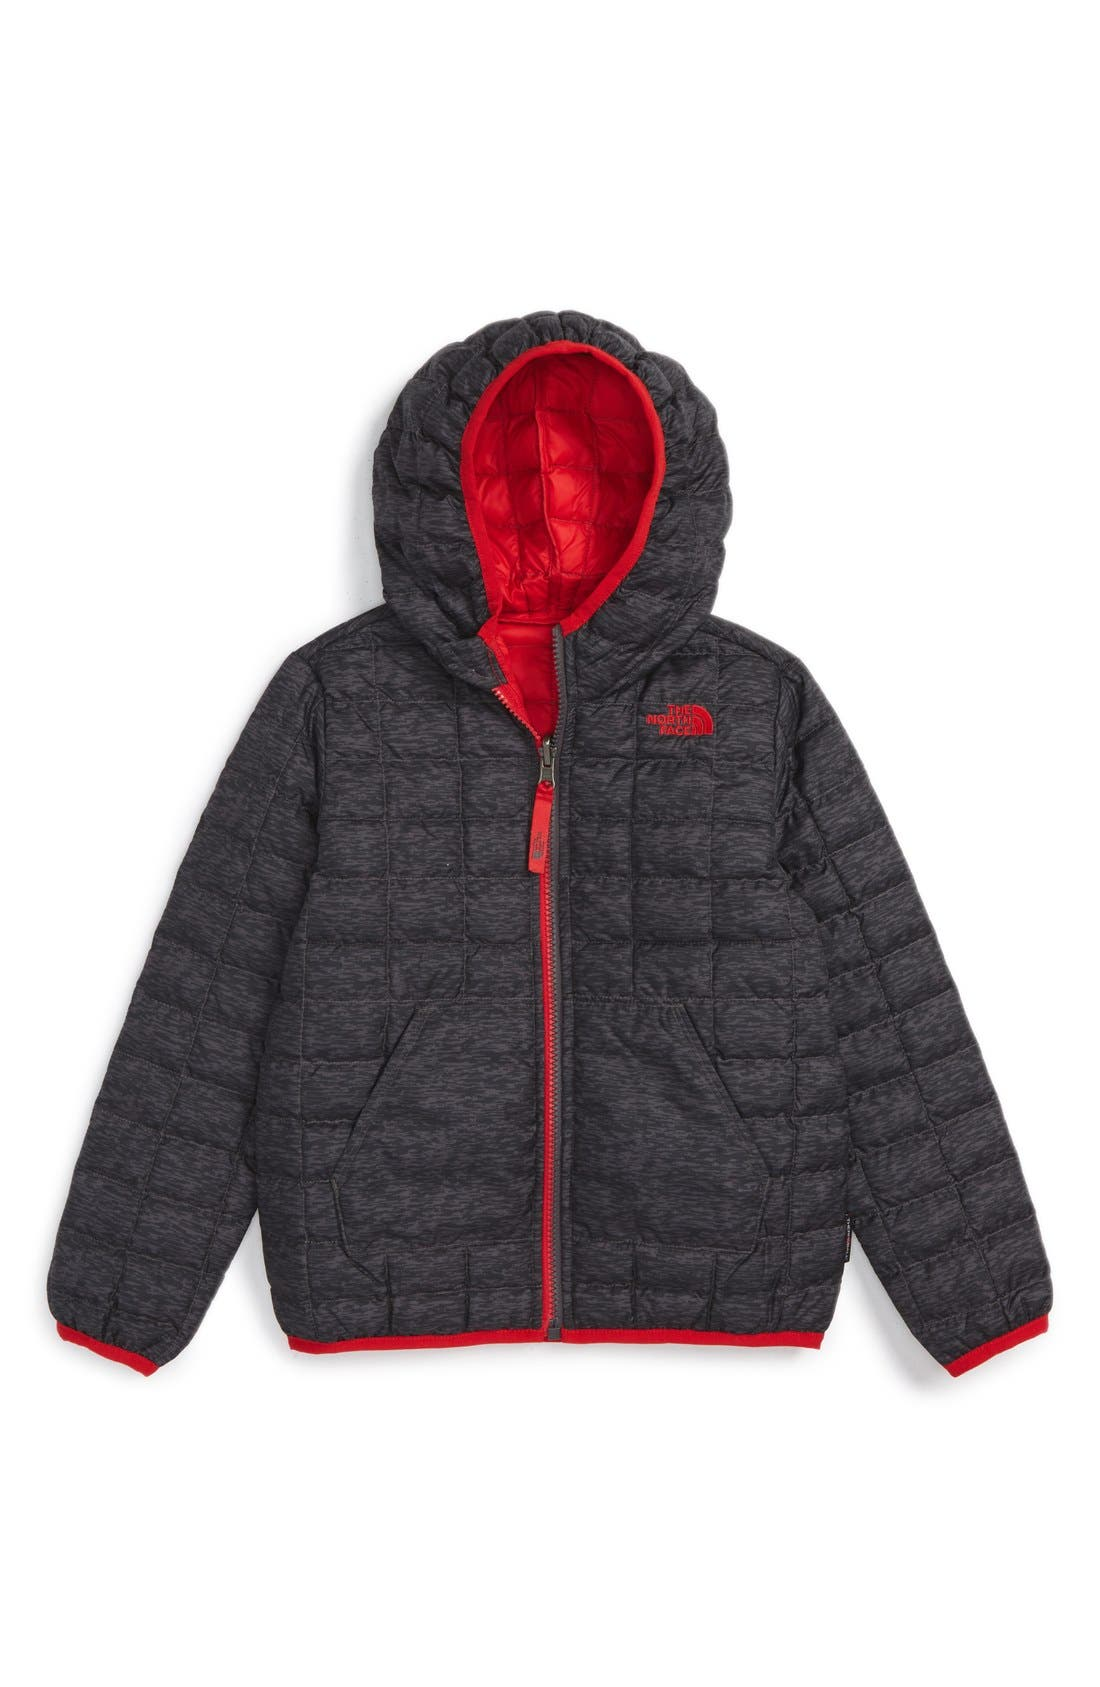 Alternate Image 1 Selected - The North Face ThermoBall™ PrimaLoft® Reversible Hooded Jacket (Toddler Boys & Little Boys)